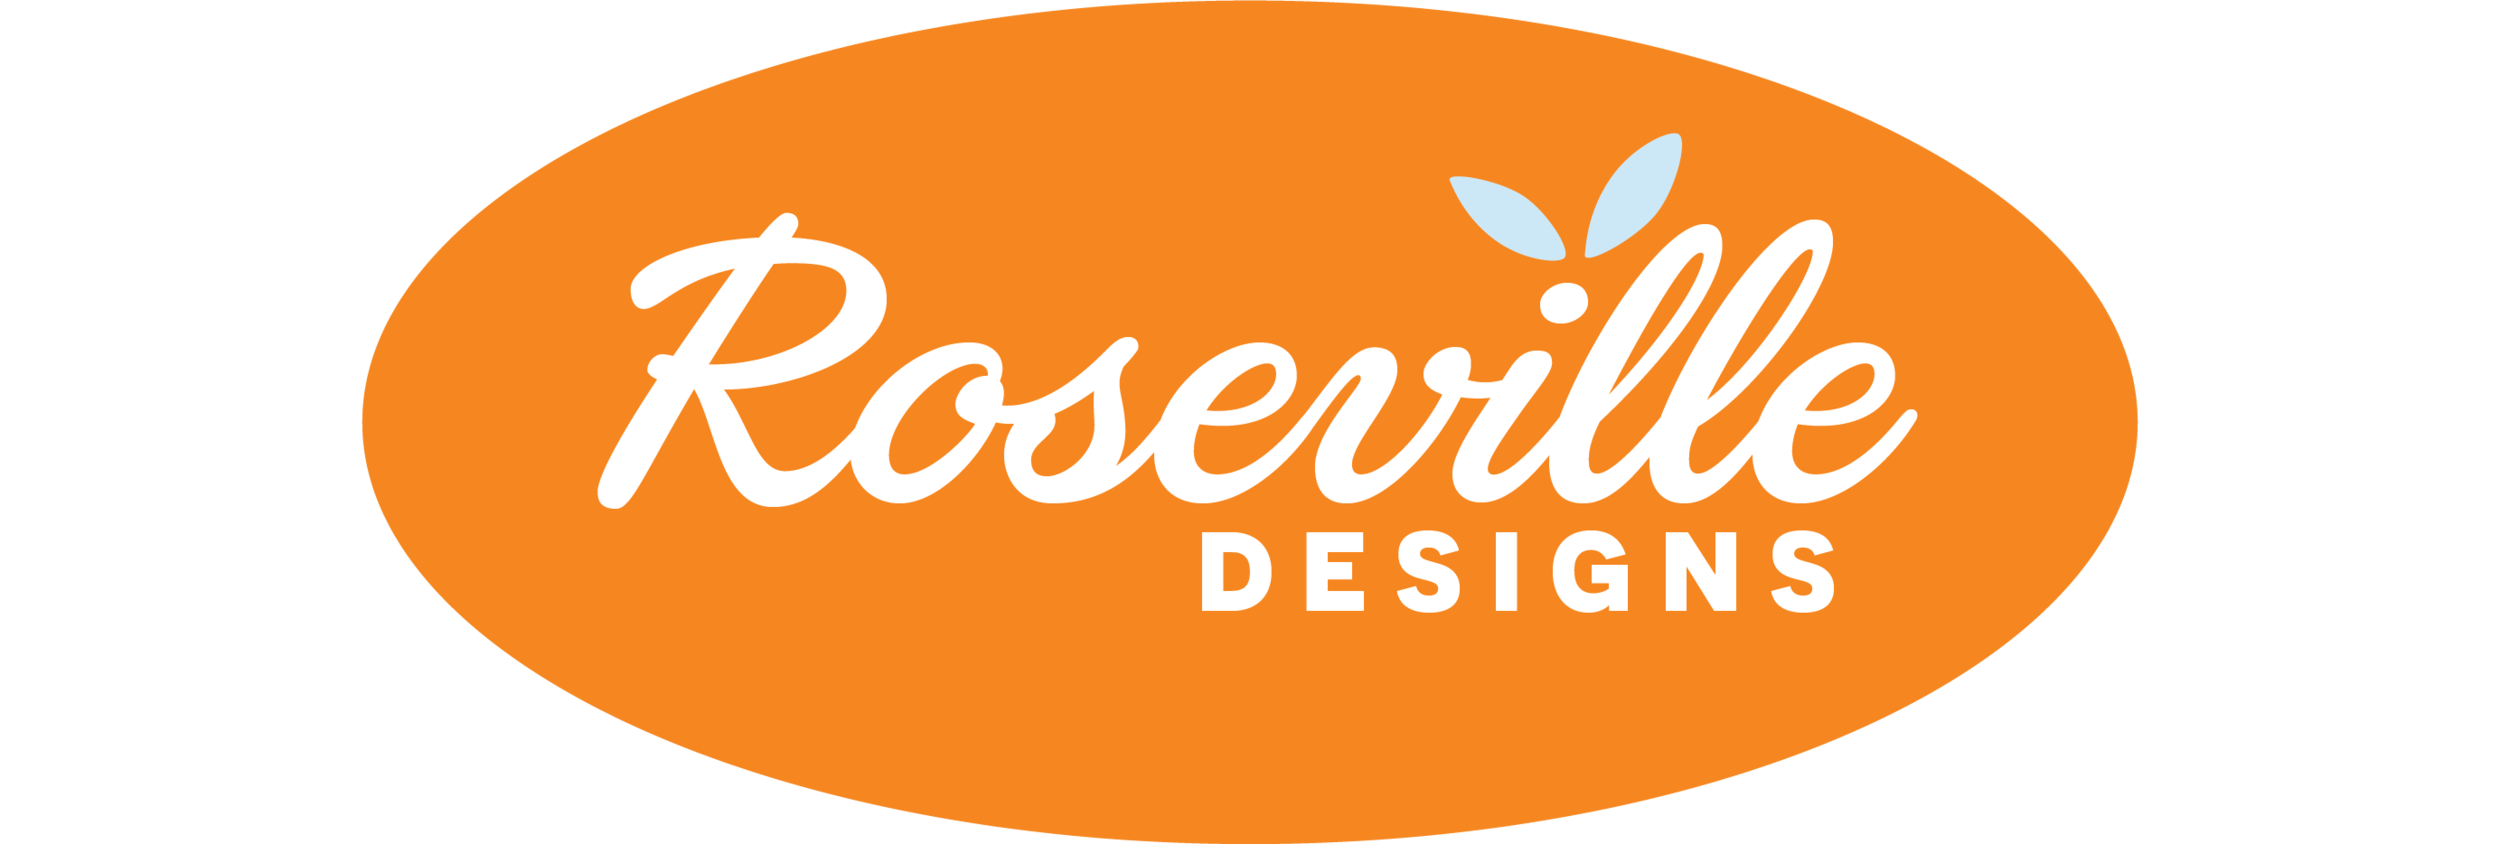 Roseville Designs Alternate Logo No Tagline.png